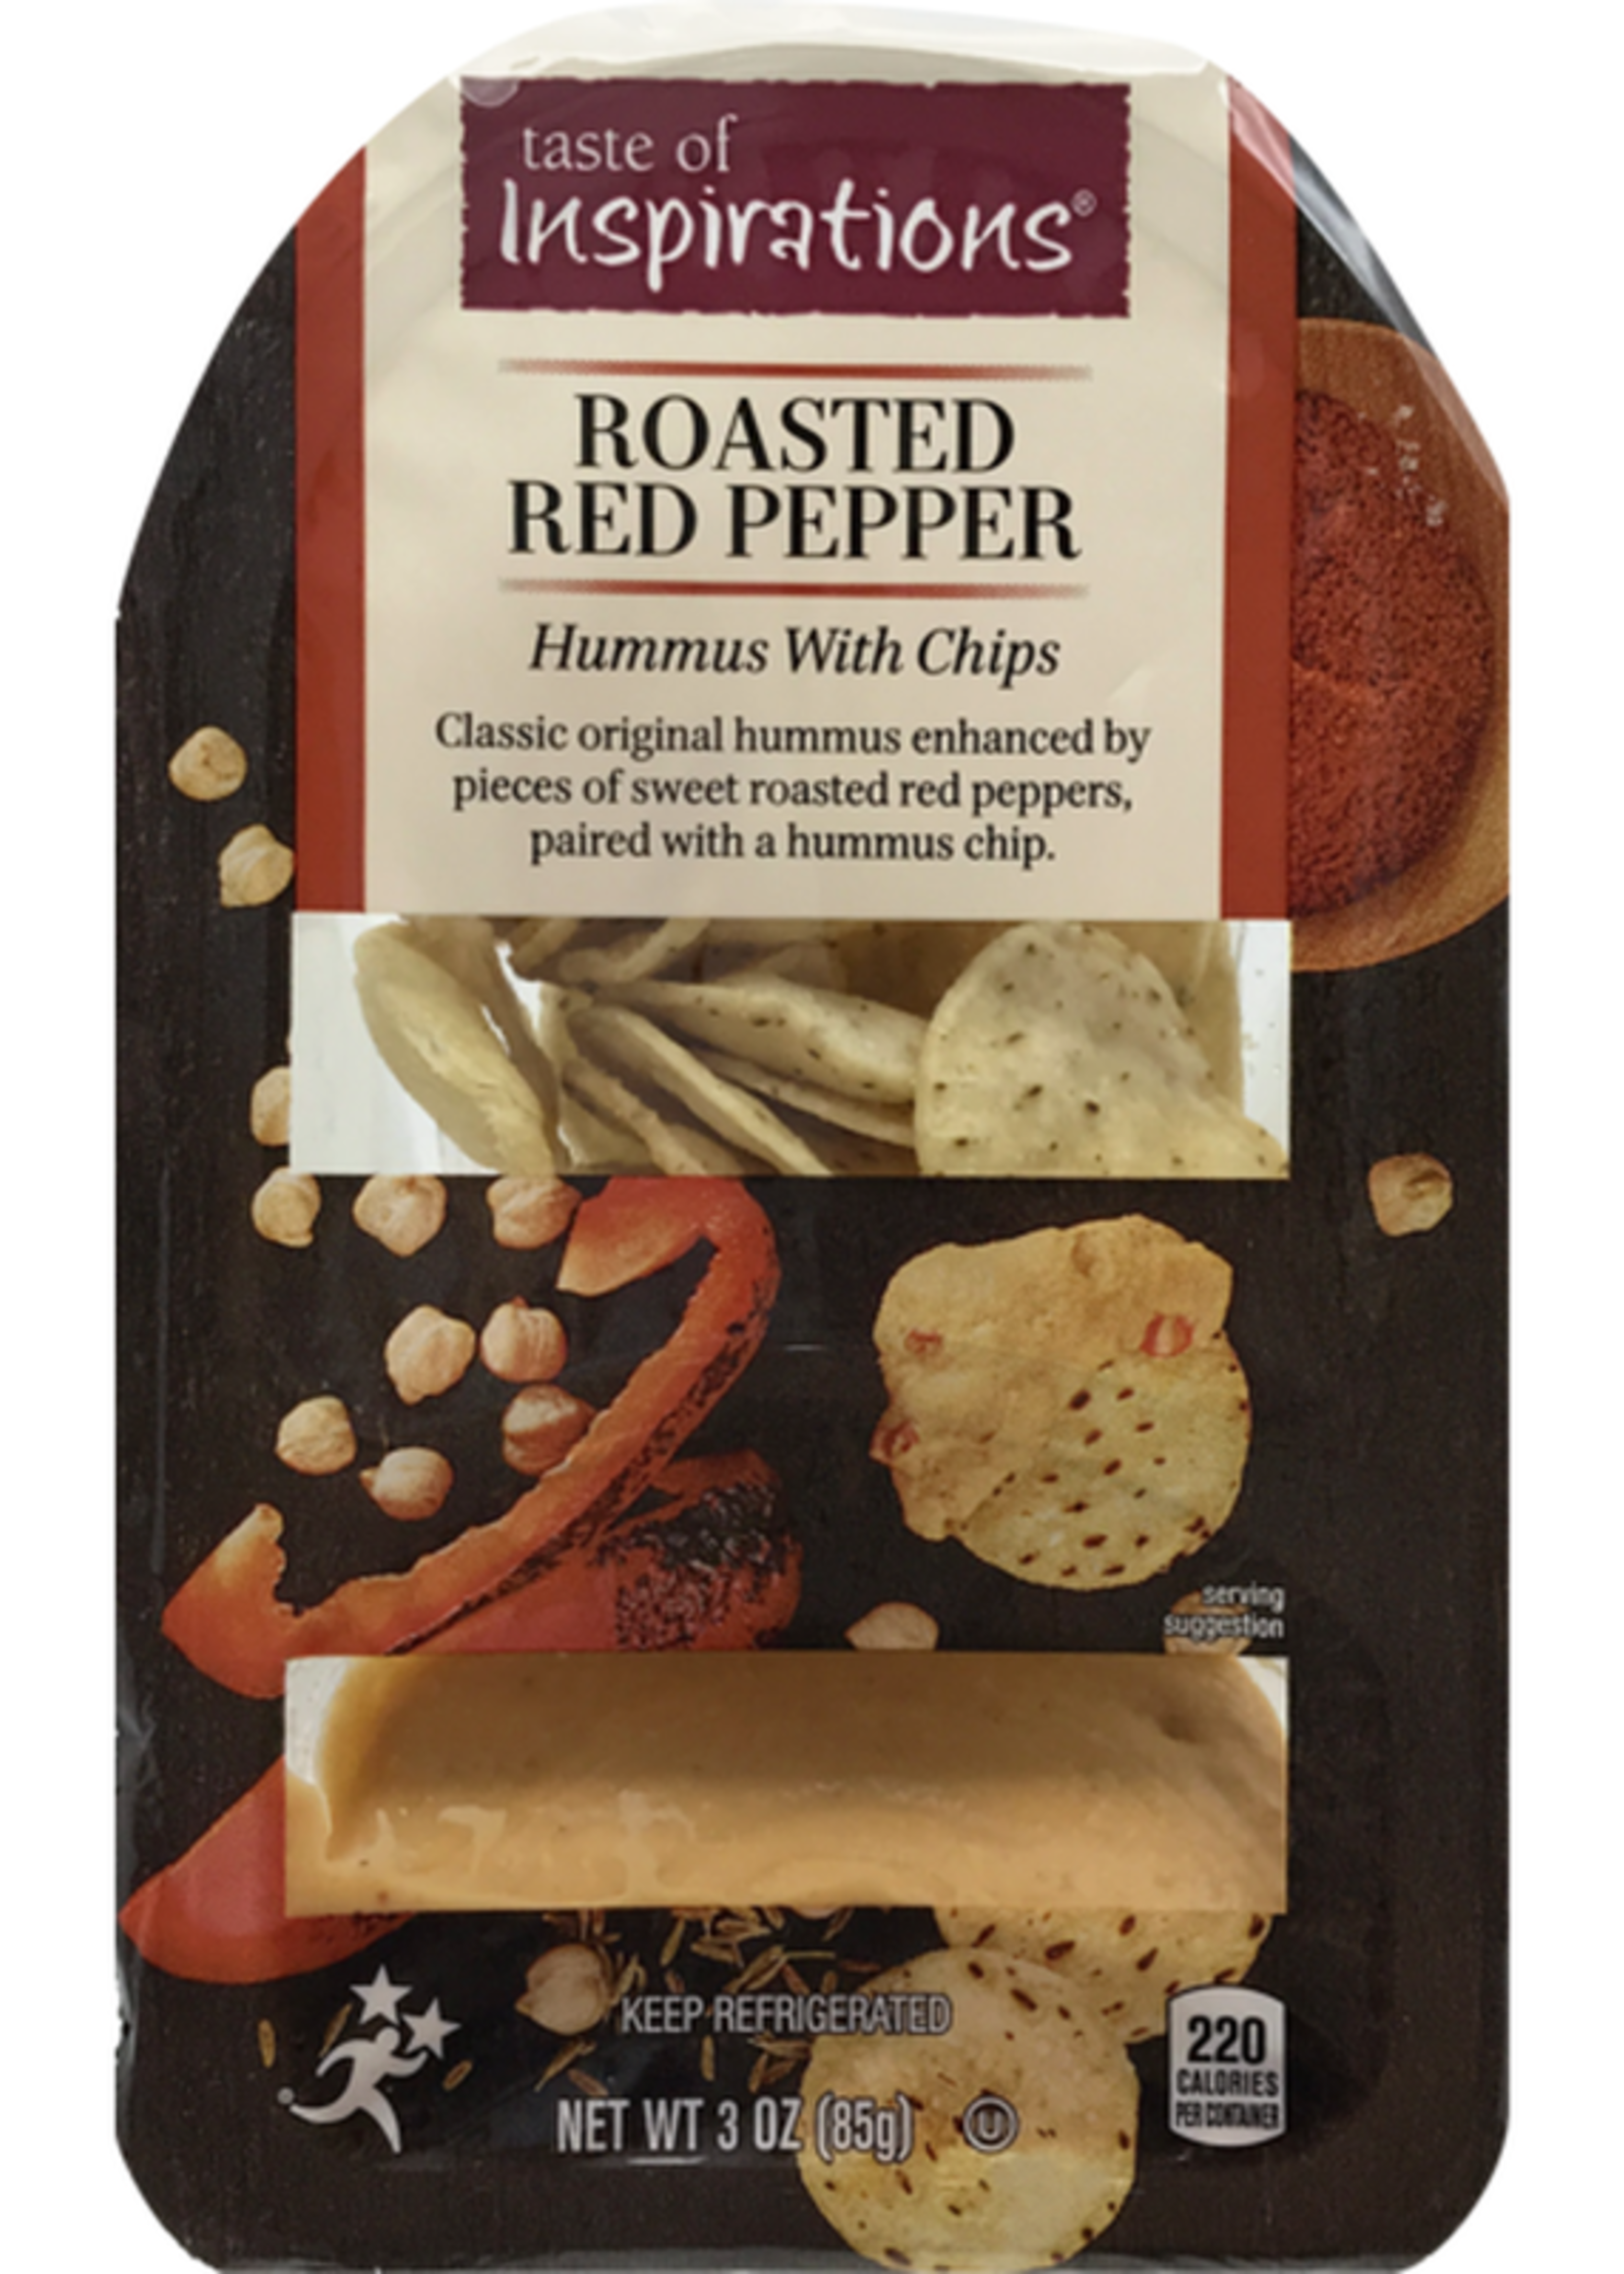 INSPIRATIONS RED PEPPER HUMMUS W/CHIPS